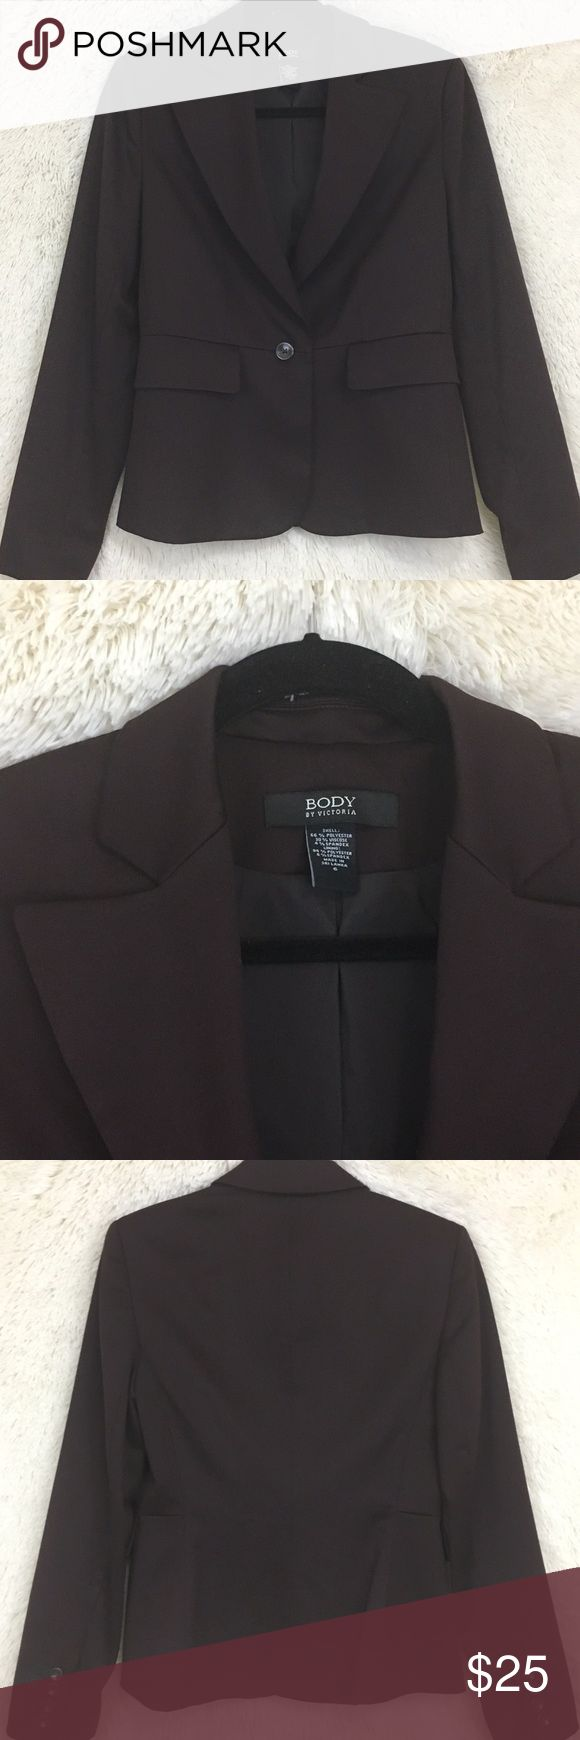 """Body by Victoria's Secret plum blazer size 6 Body by Victoria's Secret plum one button blazer. Padded shoulder. Size 6. Shell: 66% polyester, 30% viscose & 4% spandex. Lining: 94% polyester & 6% spandex. Approx flat lay measurements: 23.5"""" long, 34"""" bust, 31"""" waist & 36"""" hip, 24"""" sleeve, 6.5"""" arm hole. Dry clean only. Victoria's Secret Jackets & Coats Blazers"""